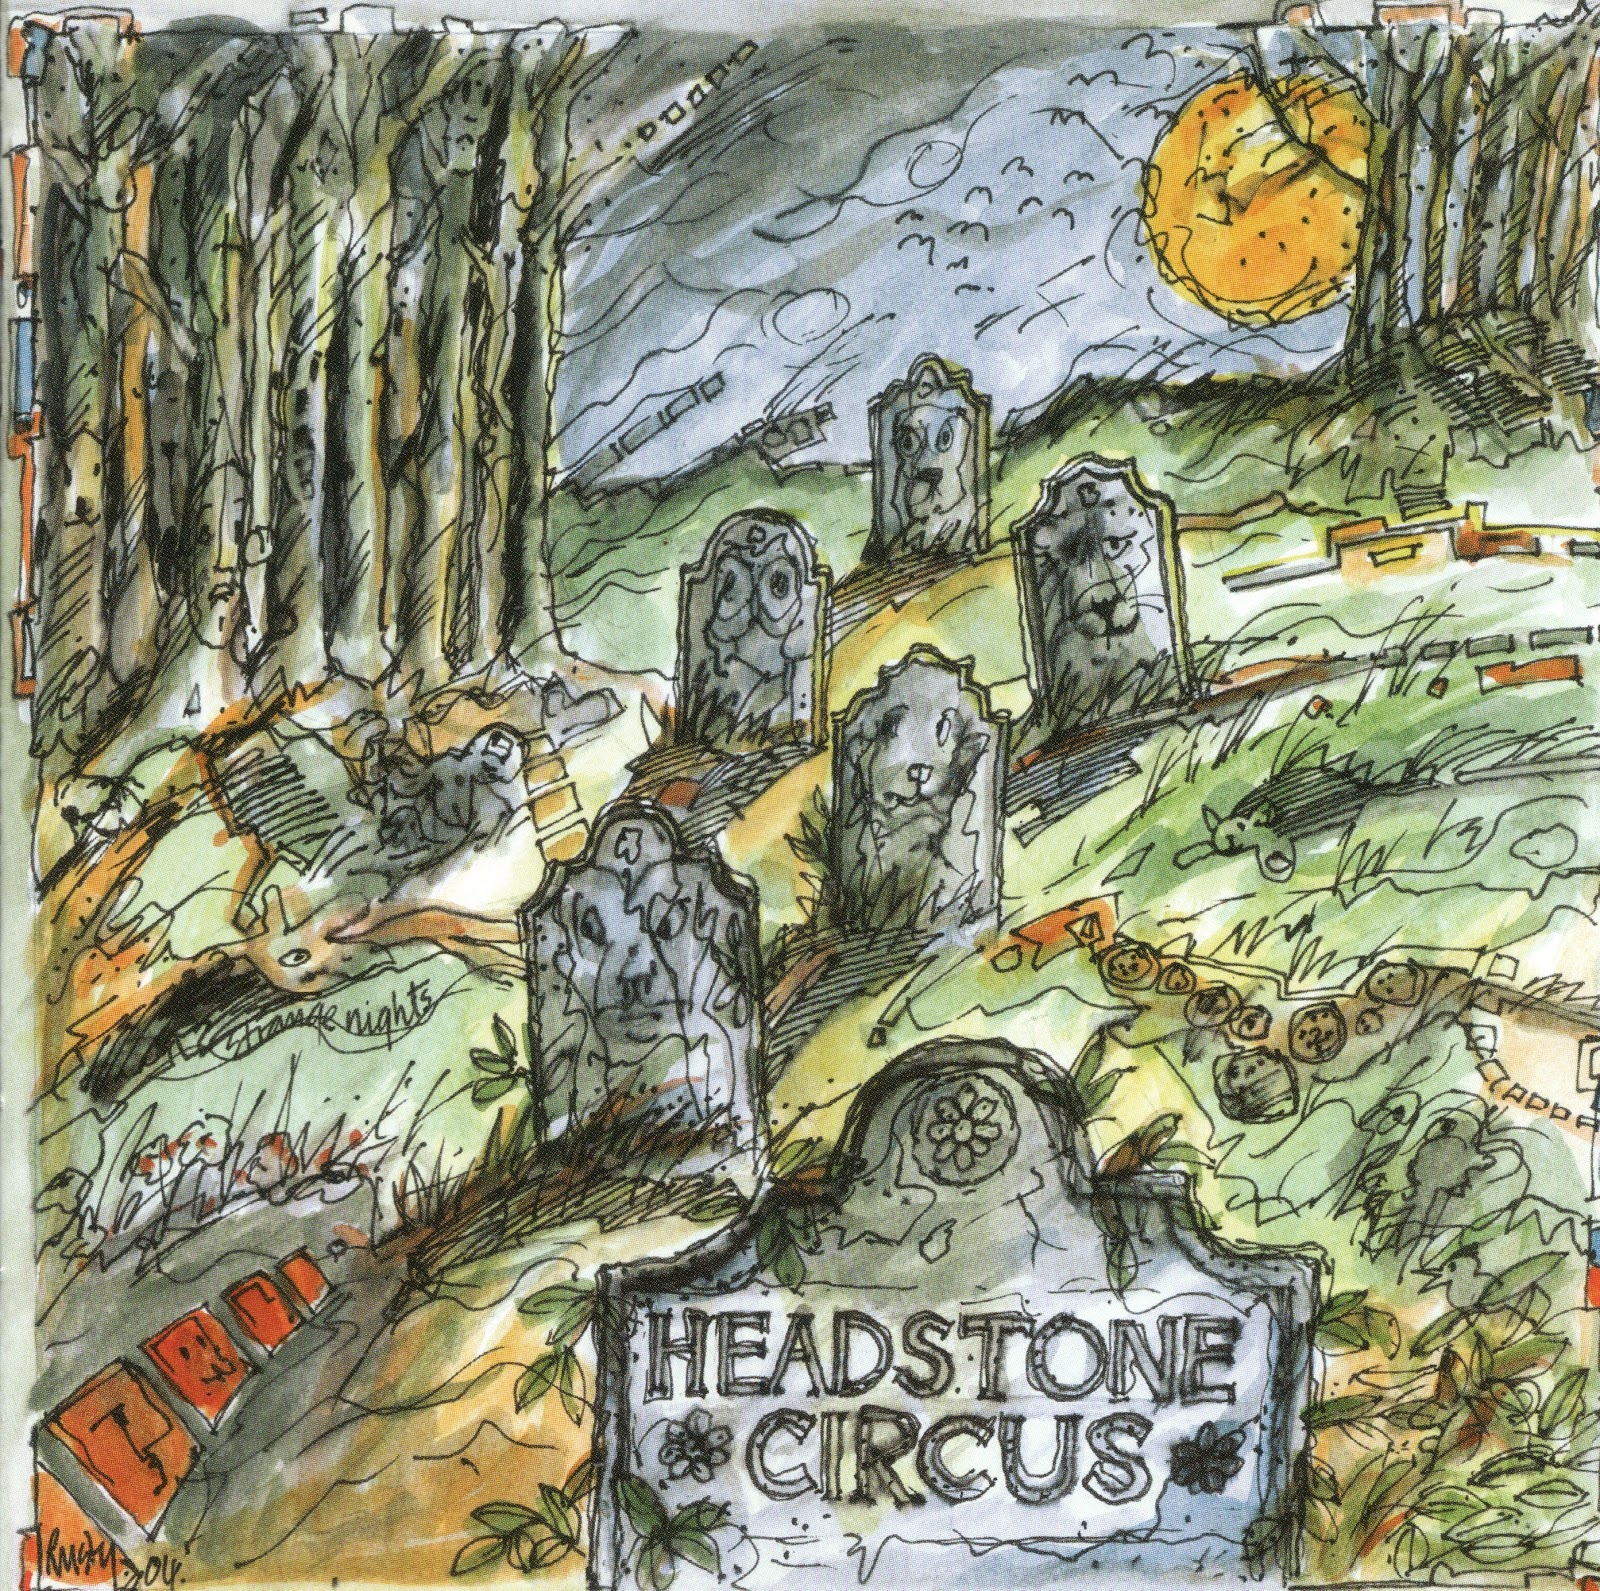 Headstone Circus - Headstone Circus! (1968-70 us, awesome